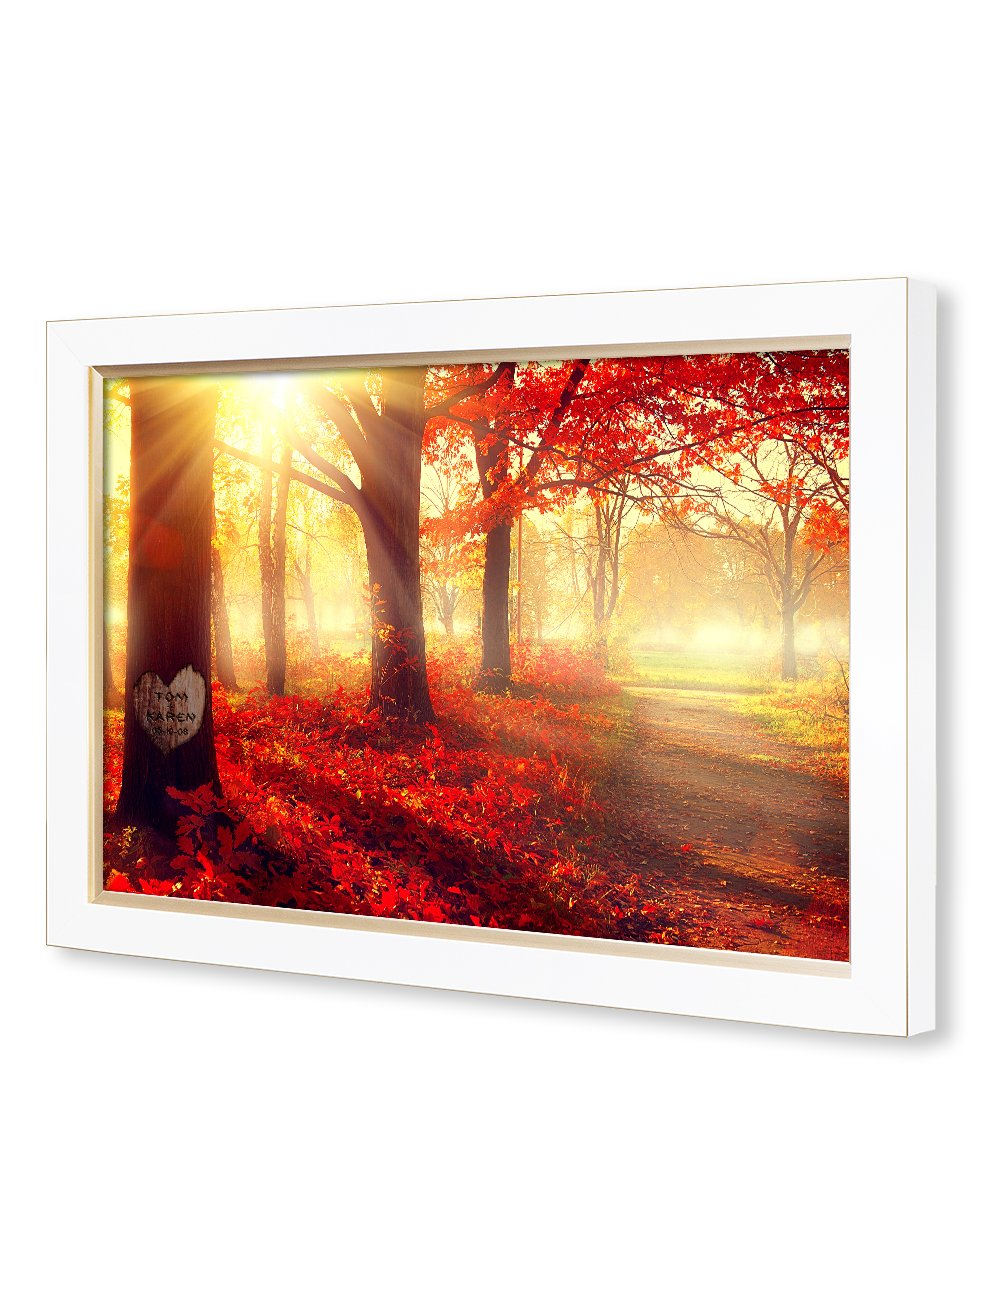 IPIC - ''You Are My Sunshine'', Personalized Artwork with Names and Date on, Perfect love gift for Anniversary,Wedding,Birthday and Holidays. Picture size: 30x20'', Framed Size: 33x23x1.25'' by IPIC (Image #3)